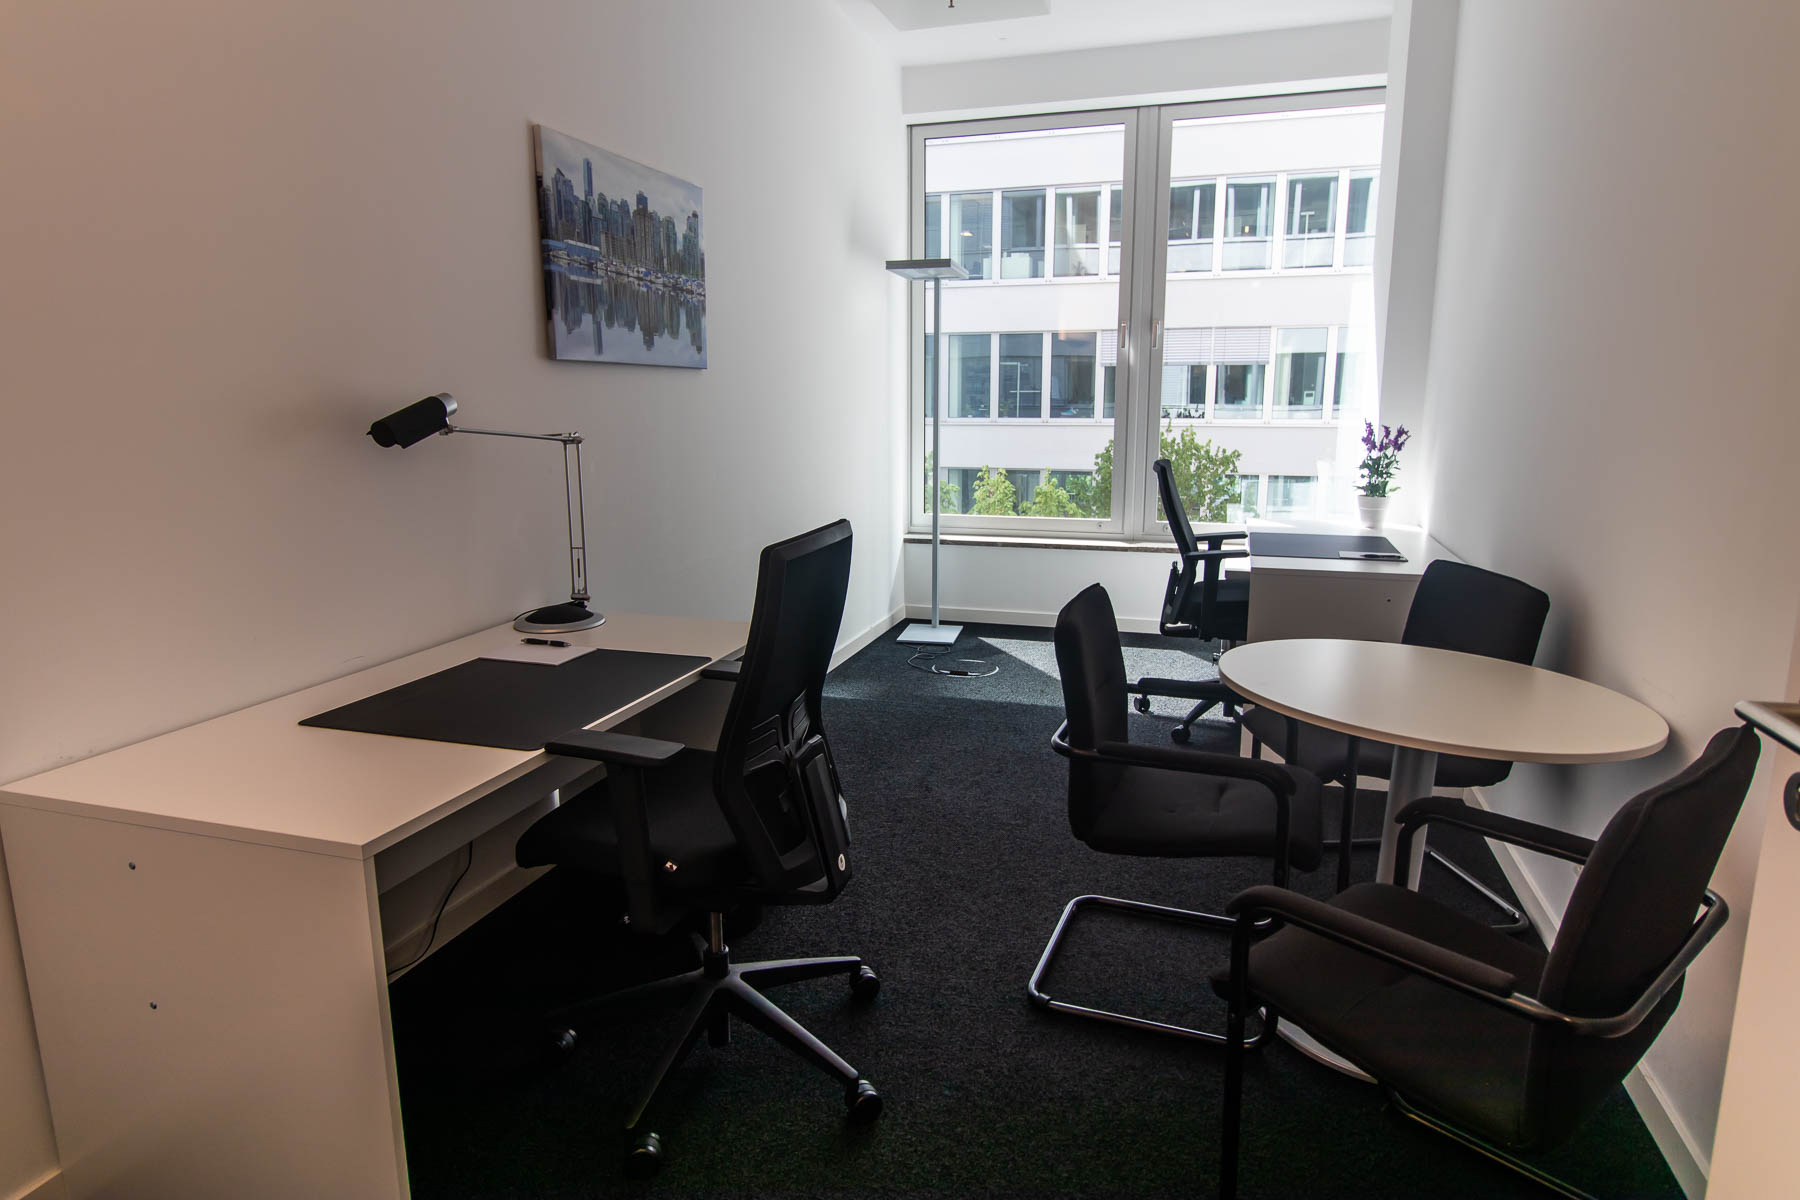 Rent office space Bertha-Benz-Straße 5, Berlin (4)